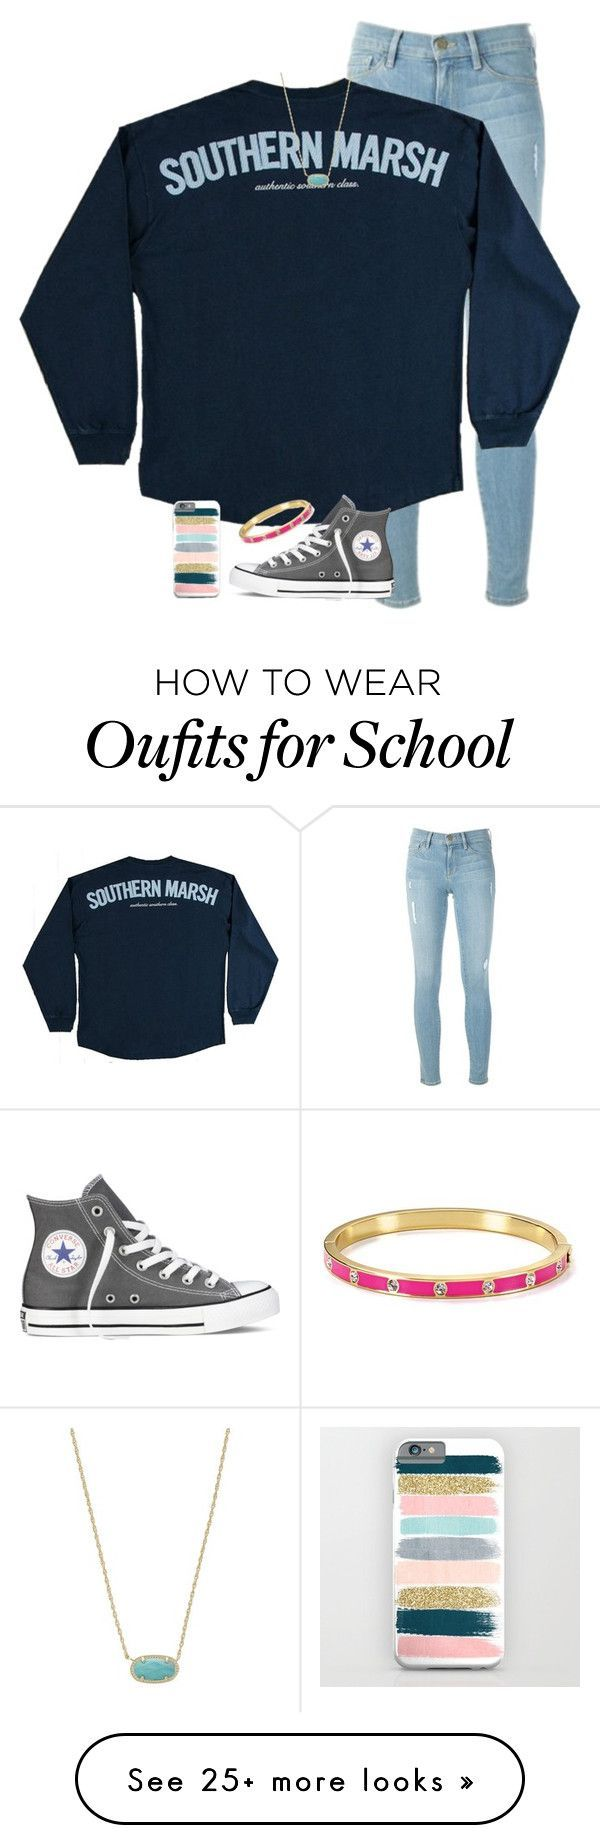 """ay no school again tomorrow im hype"" by preppin on Polyvore featuring Frame Denim, Converse, Kendra Scott, Kate Spade, women's clothing, women, female, woman, misses and juniors"